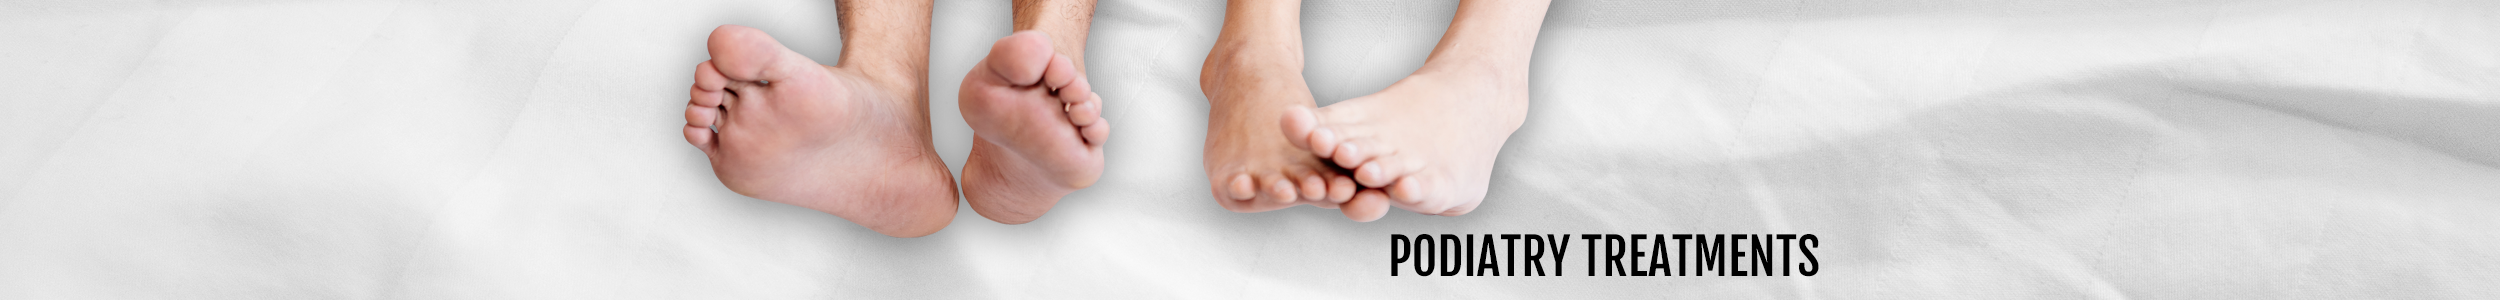 Podiatry treatments header for the Walk IN Foot Clinic in central London